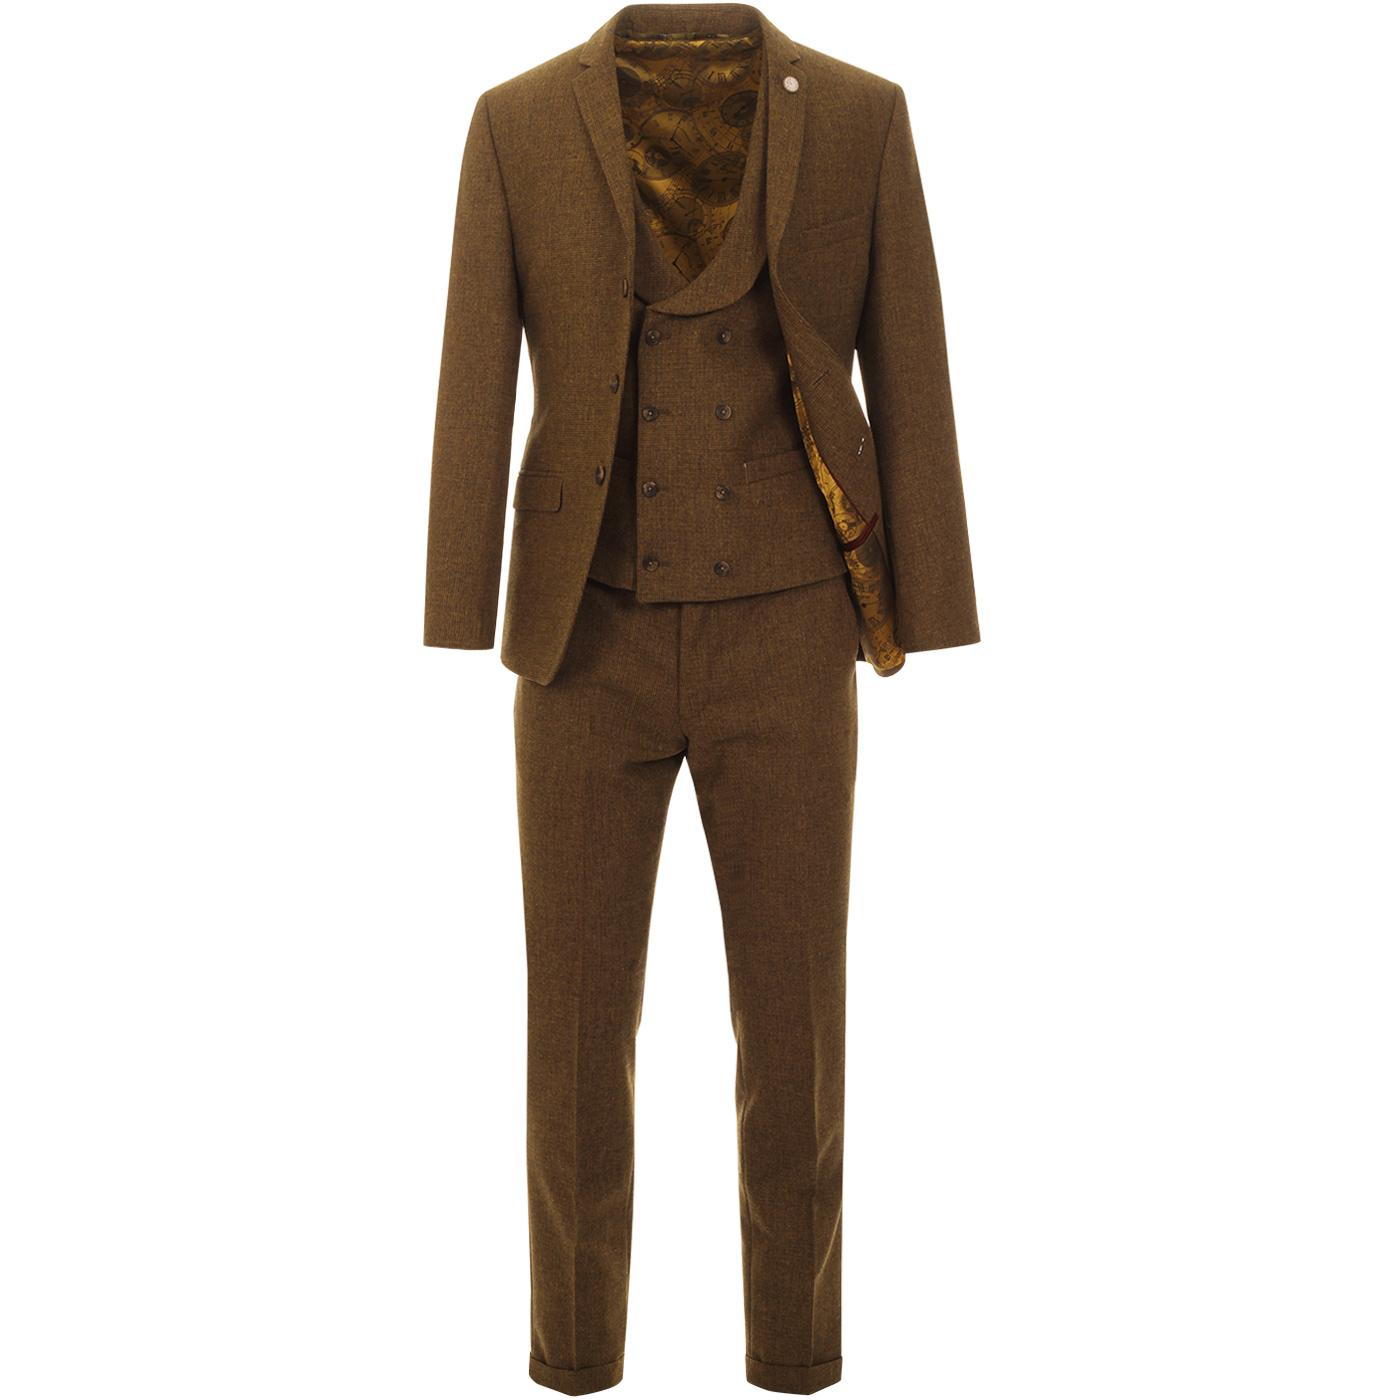 GIBSON LONDON 70s Mod Puppytooth Suit in Old Gold